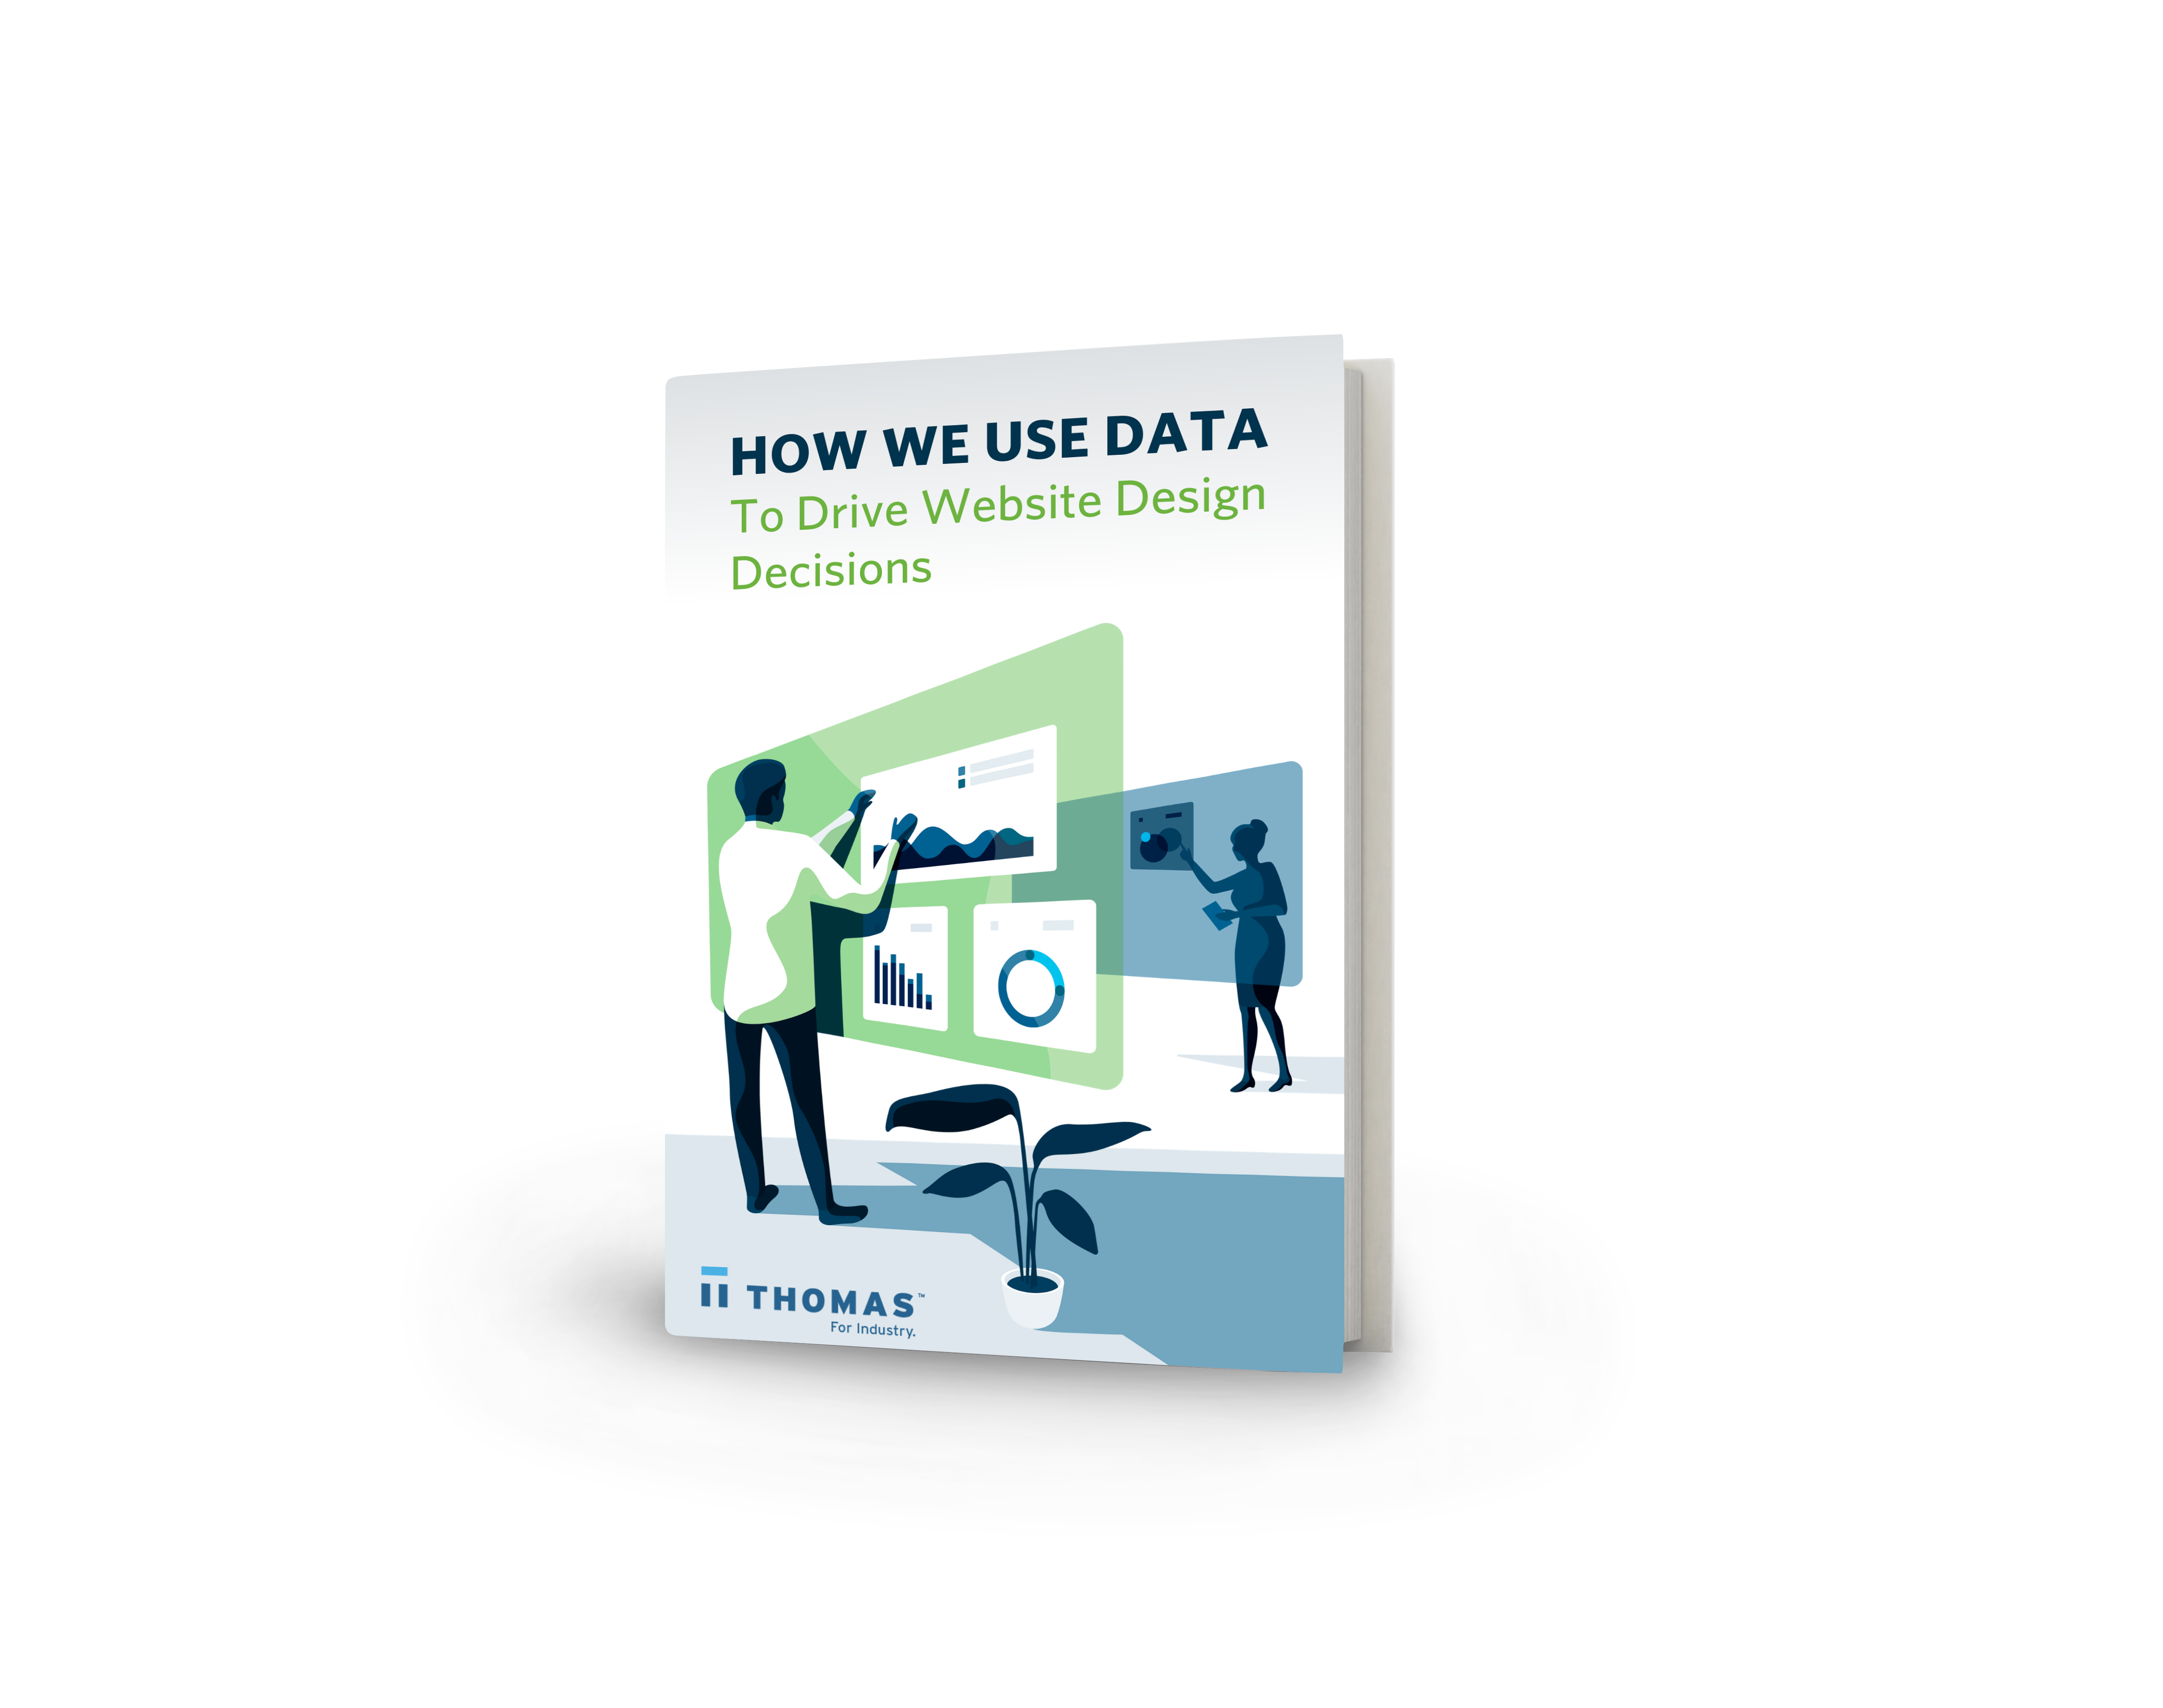 How We Use Data To Drive Website Design Decisions